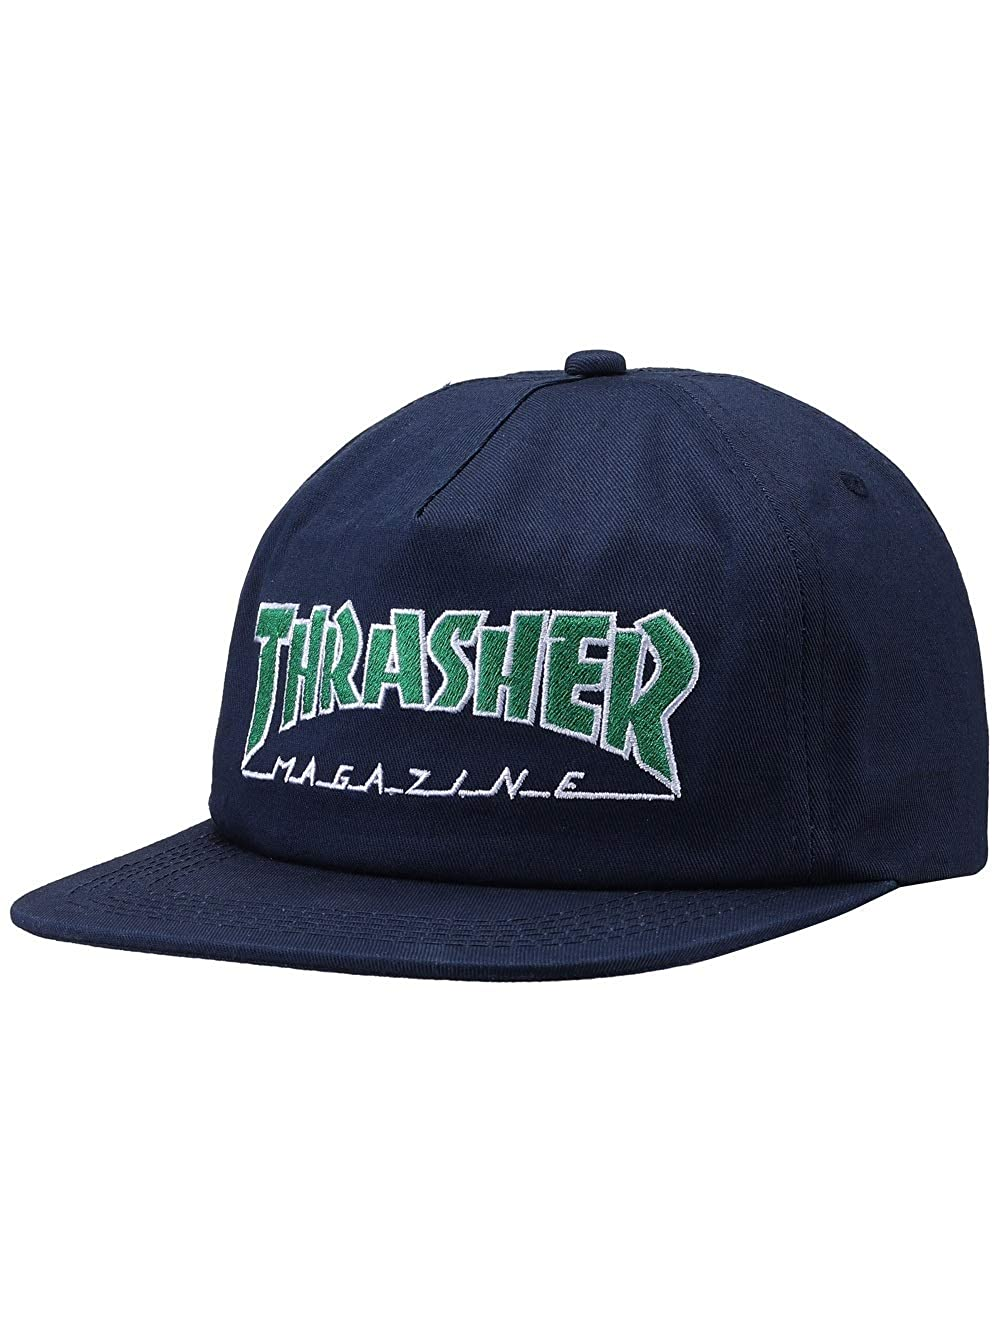 ea06410d9 Thrasher Magazine Outlined Logo Unstructured Snapback Hat - Navy ...